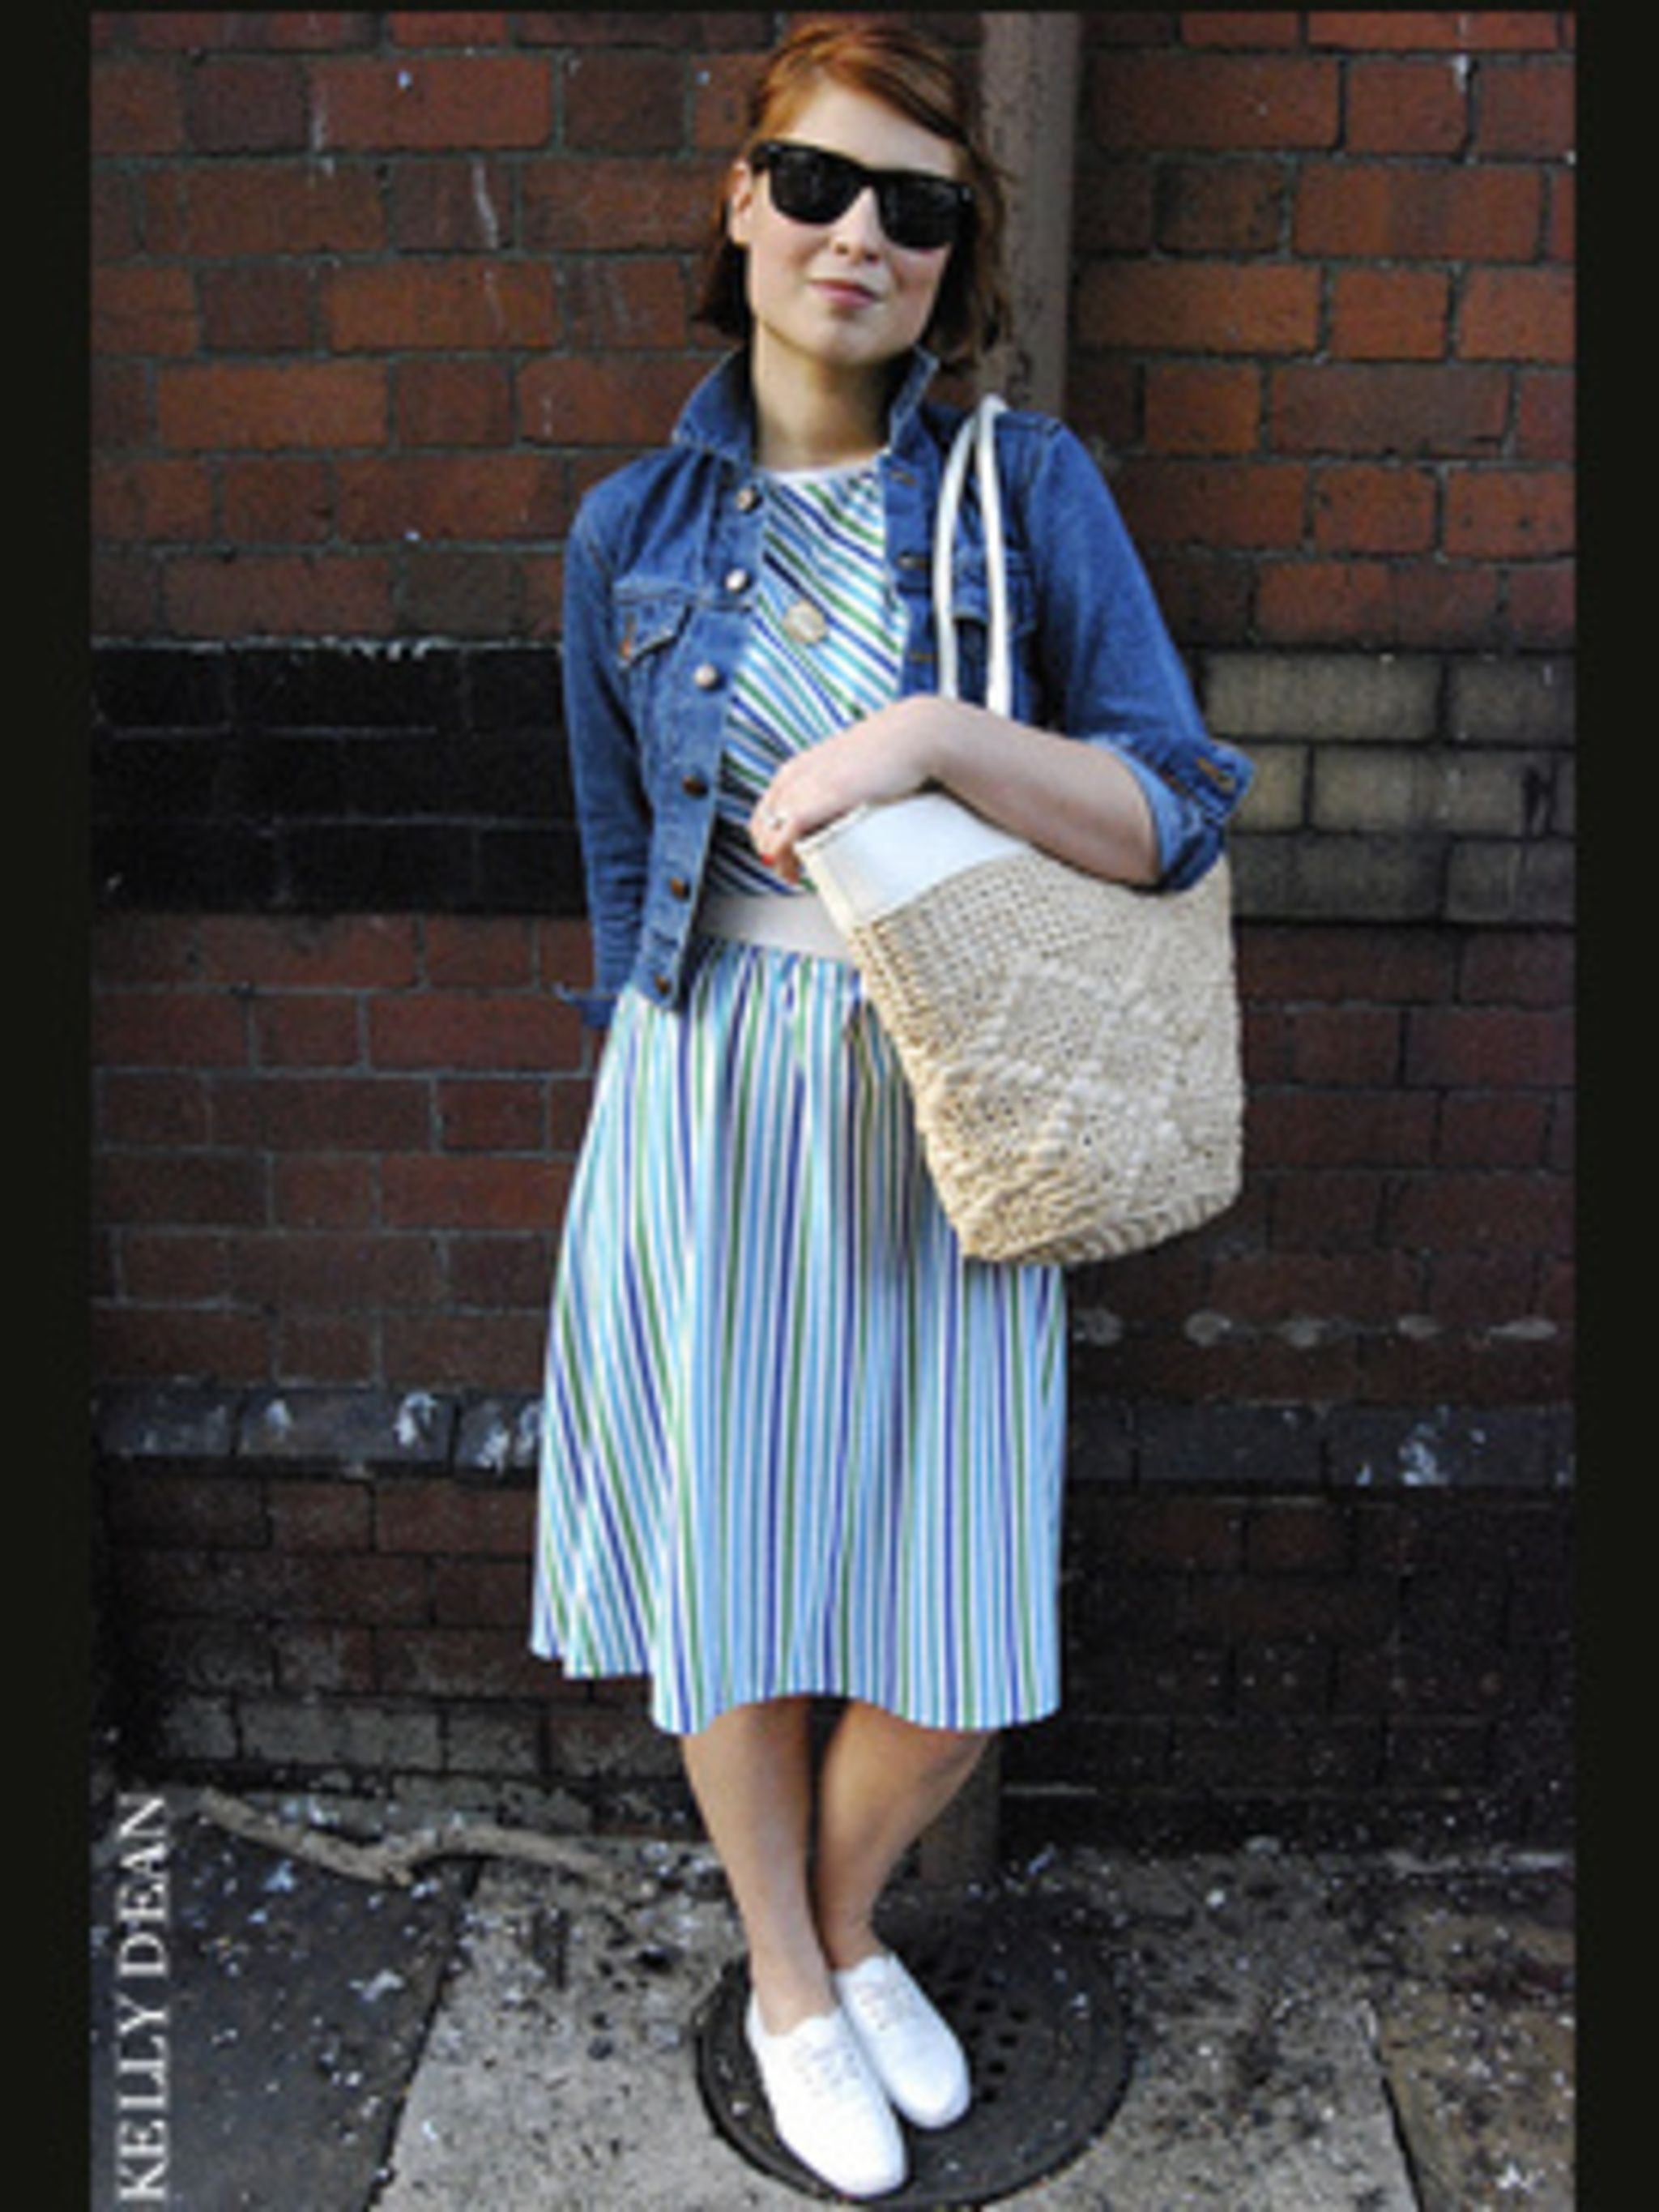 <p>Effortlessly cool, Harriet has opted for a distinctly retro look with her vintage candy striped dress. The addition of a denim jacket - collar turned up of course - straw bag and white pumps is a great way to do nautical without looking like a sailor.